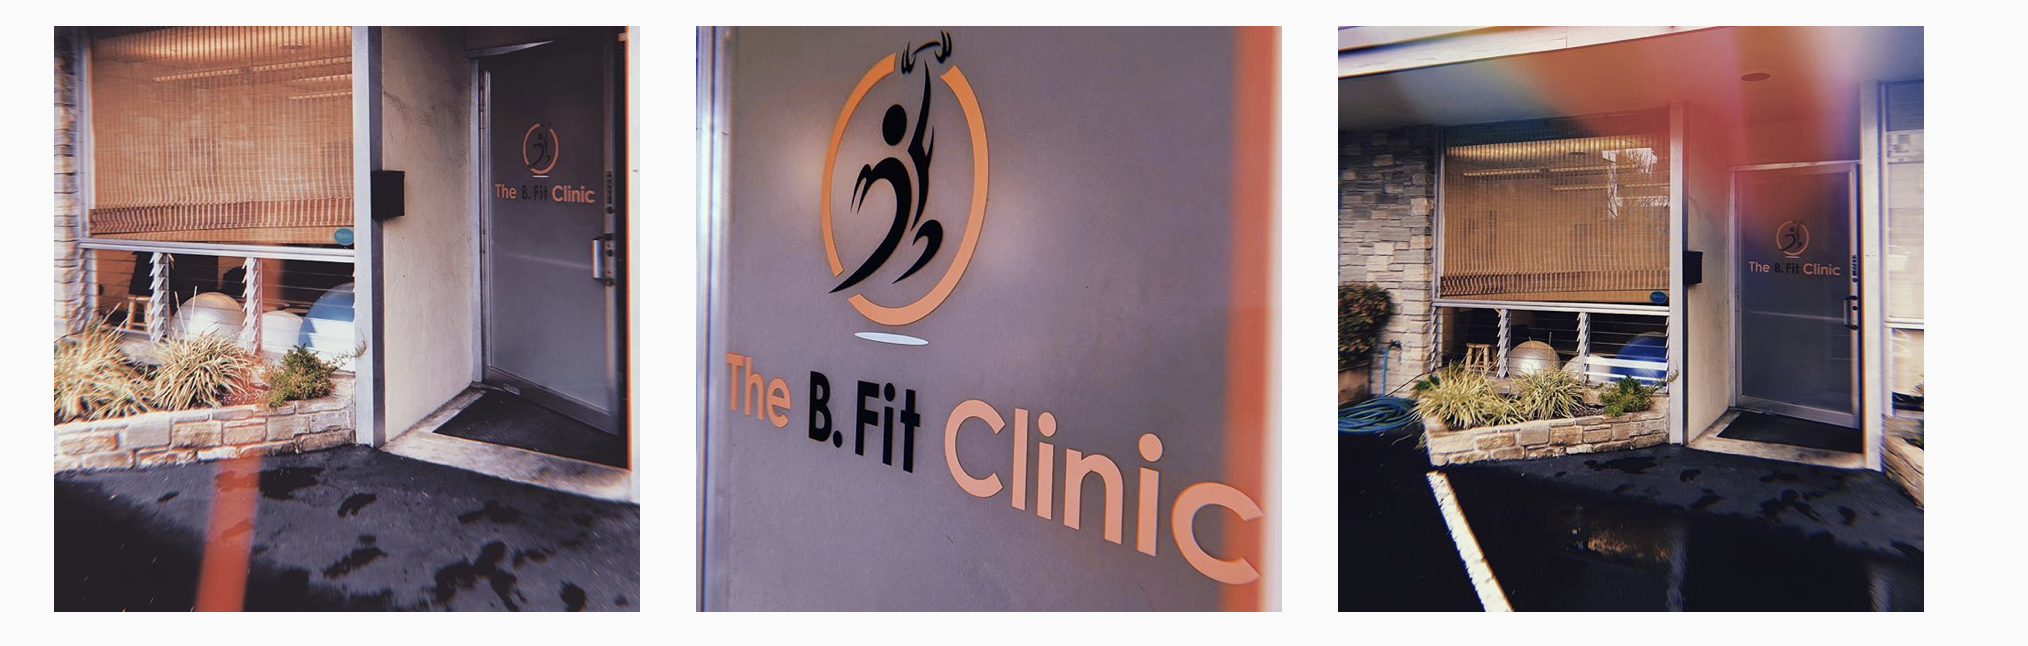 Our Practice - We are located in downtown San Mateo611 South B StreetSan Mateo, CA 94542